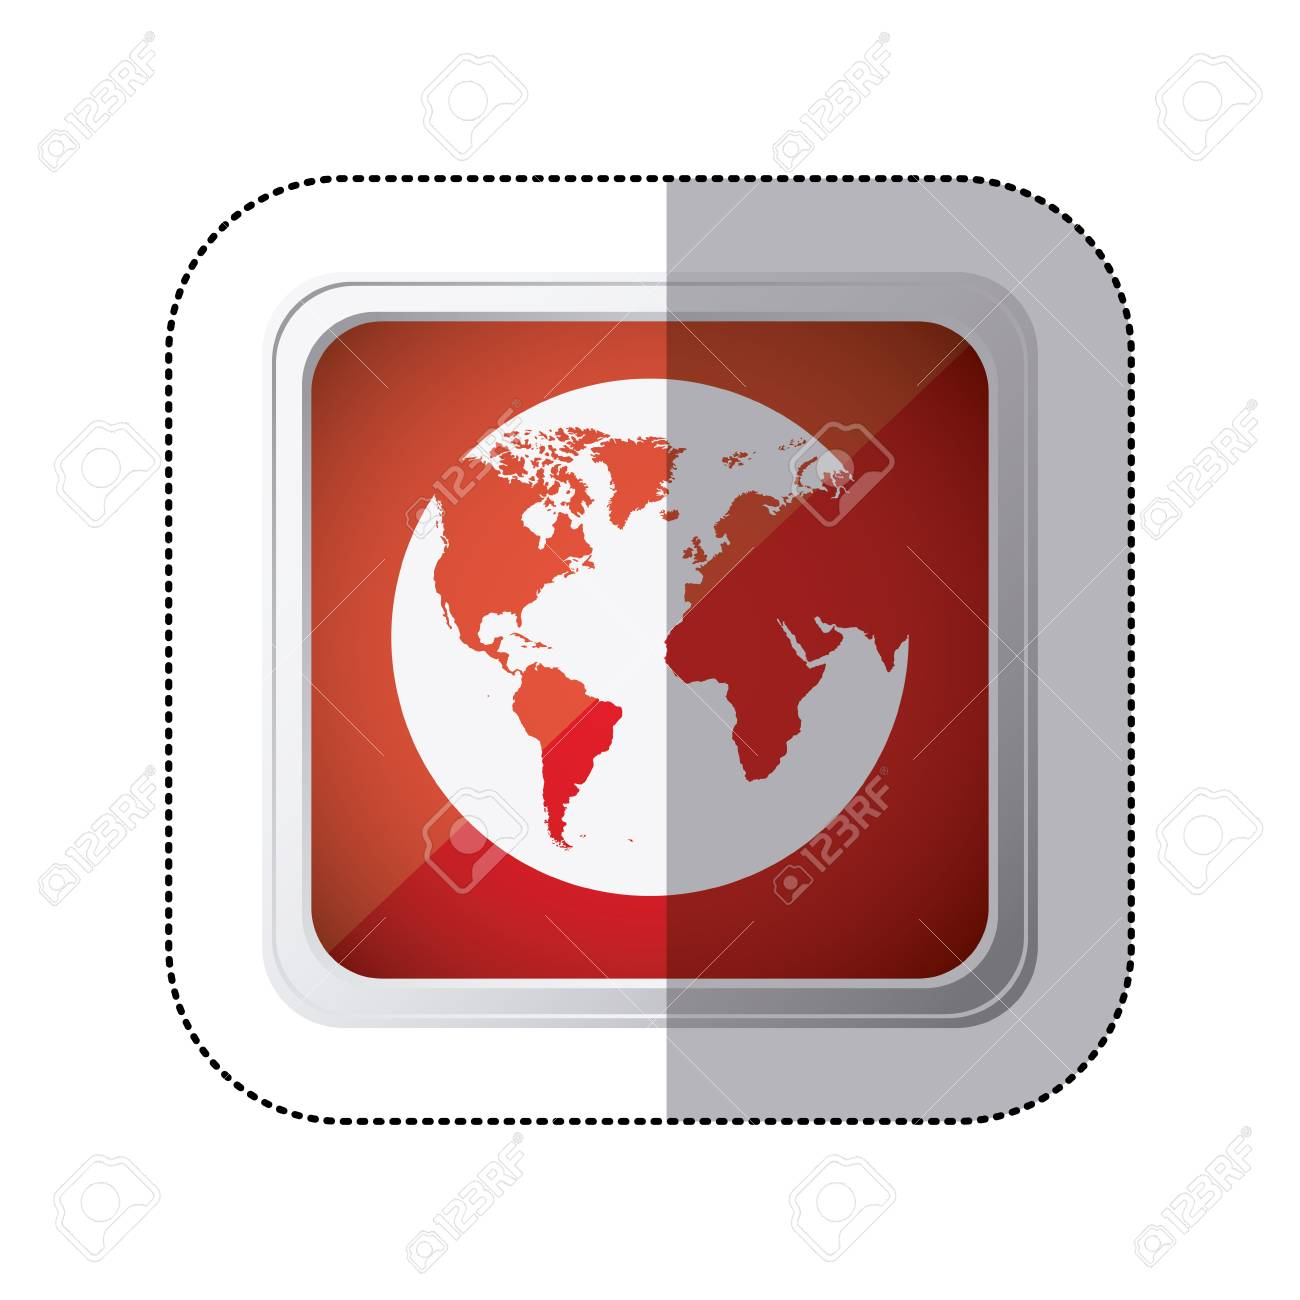 Sticker red square button with silhouette globe earth world map sticker red square button with silhouette globe earth world map vector illustration stock vector 72907667 gumiabroncs Images